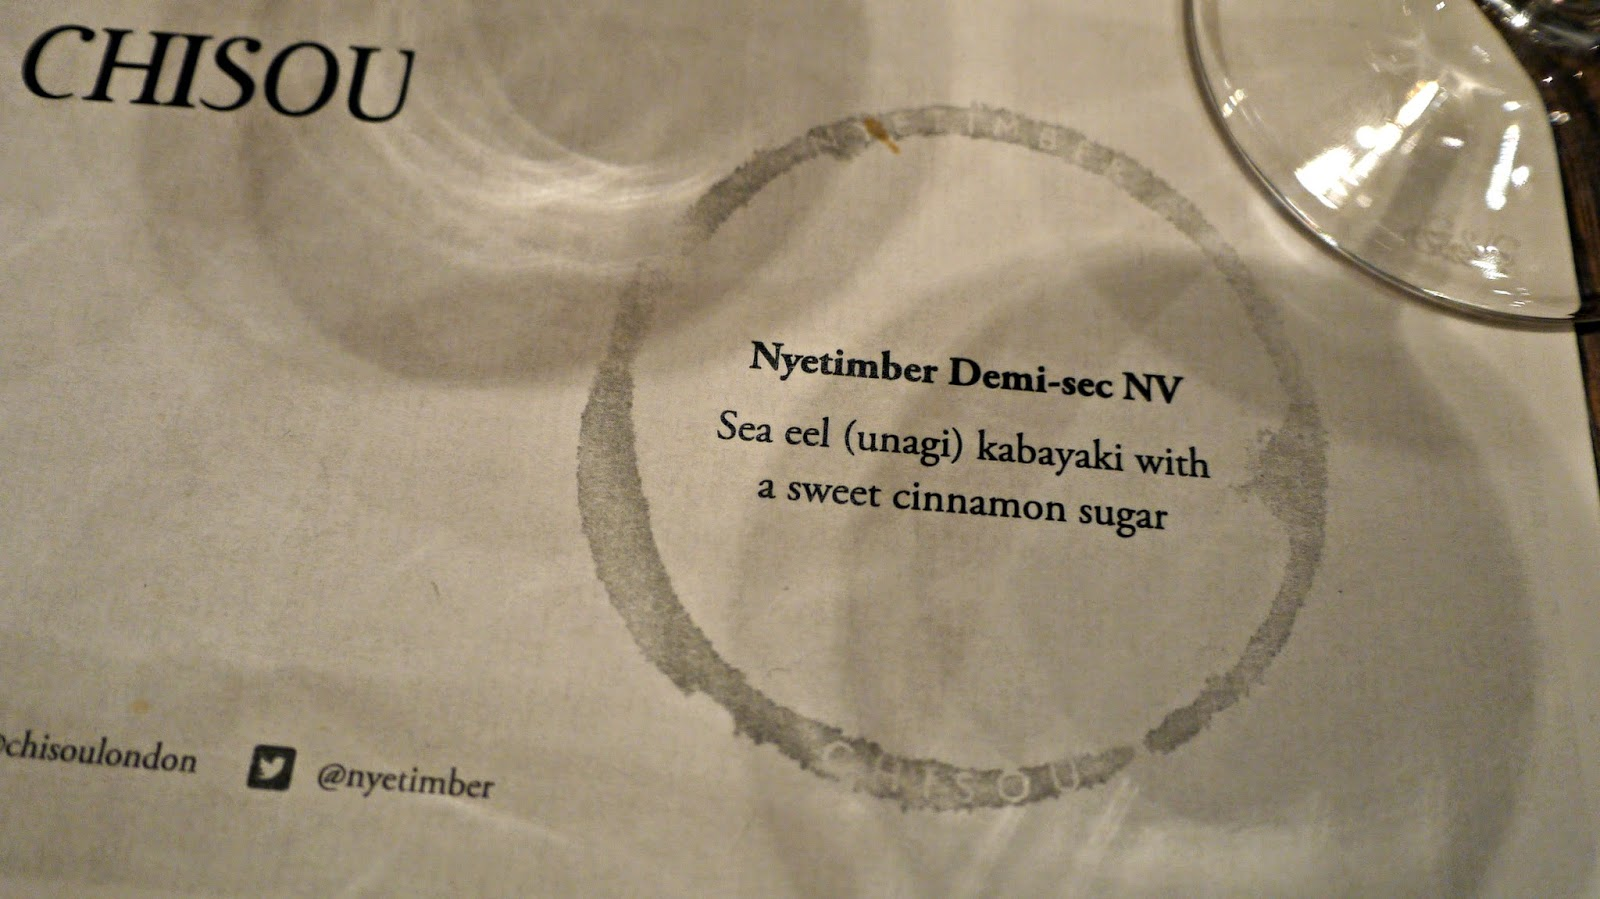 Nyetimber and Chisou tasting event